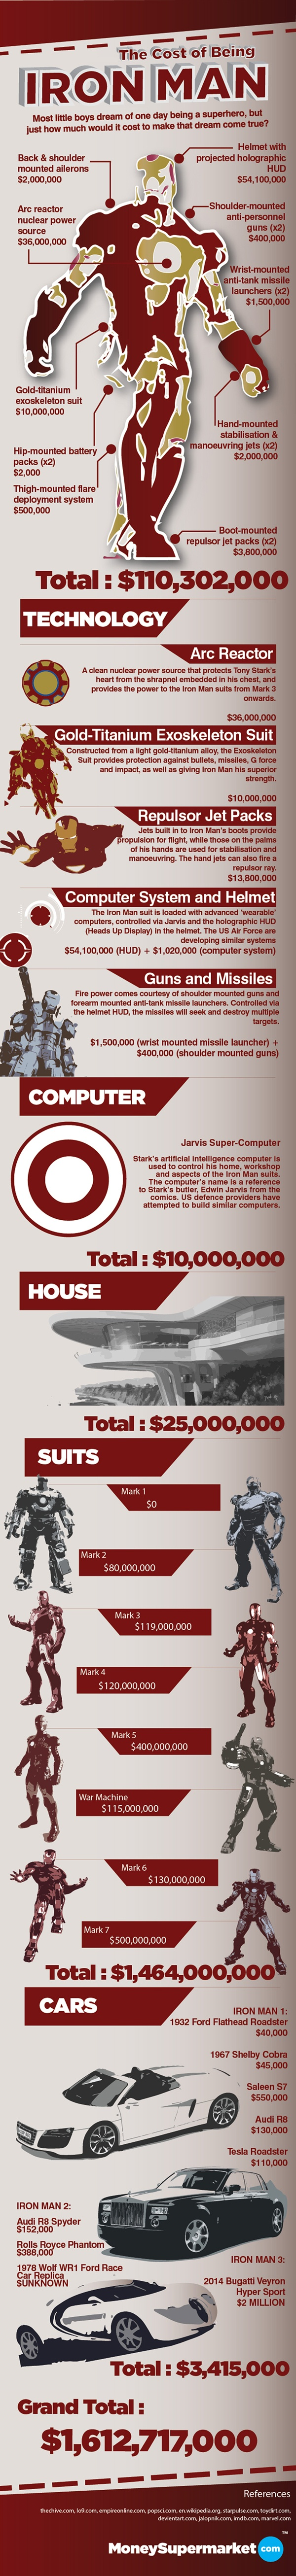 The cost of being #IronMan